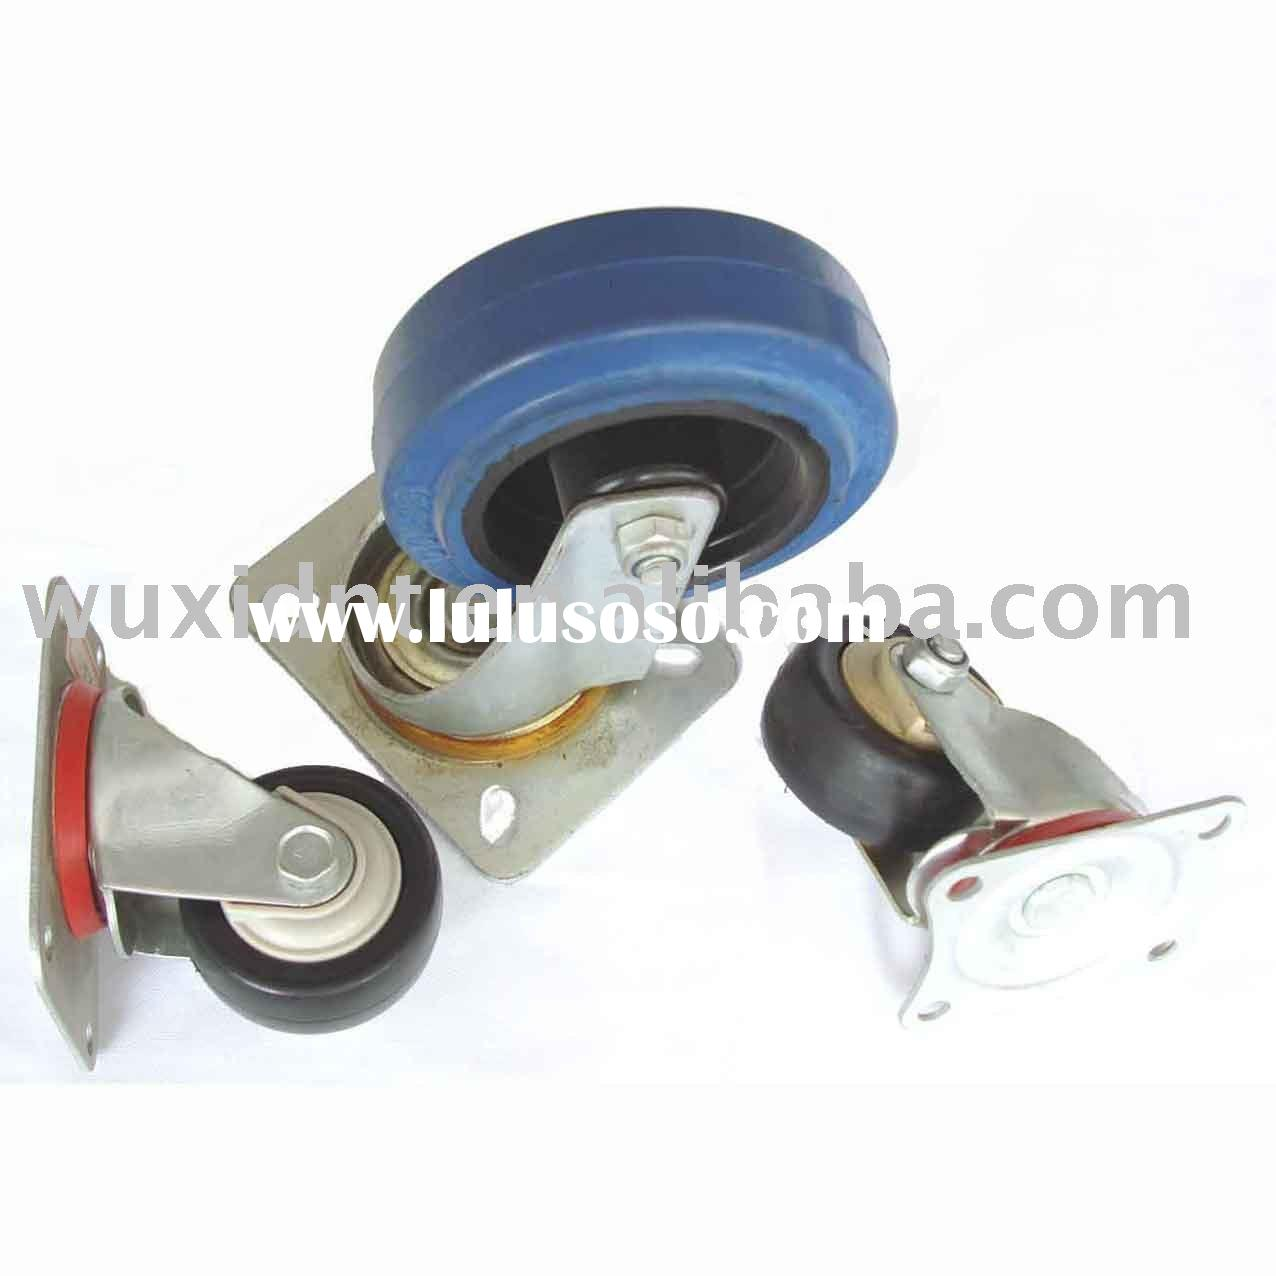 TEXTILE SPARE PARTS sliver can Caster,wheels for carding machine